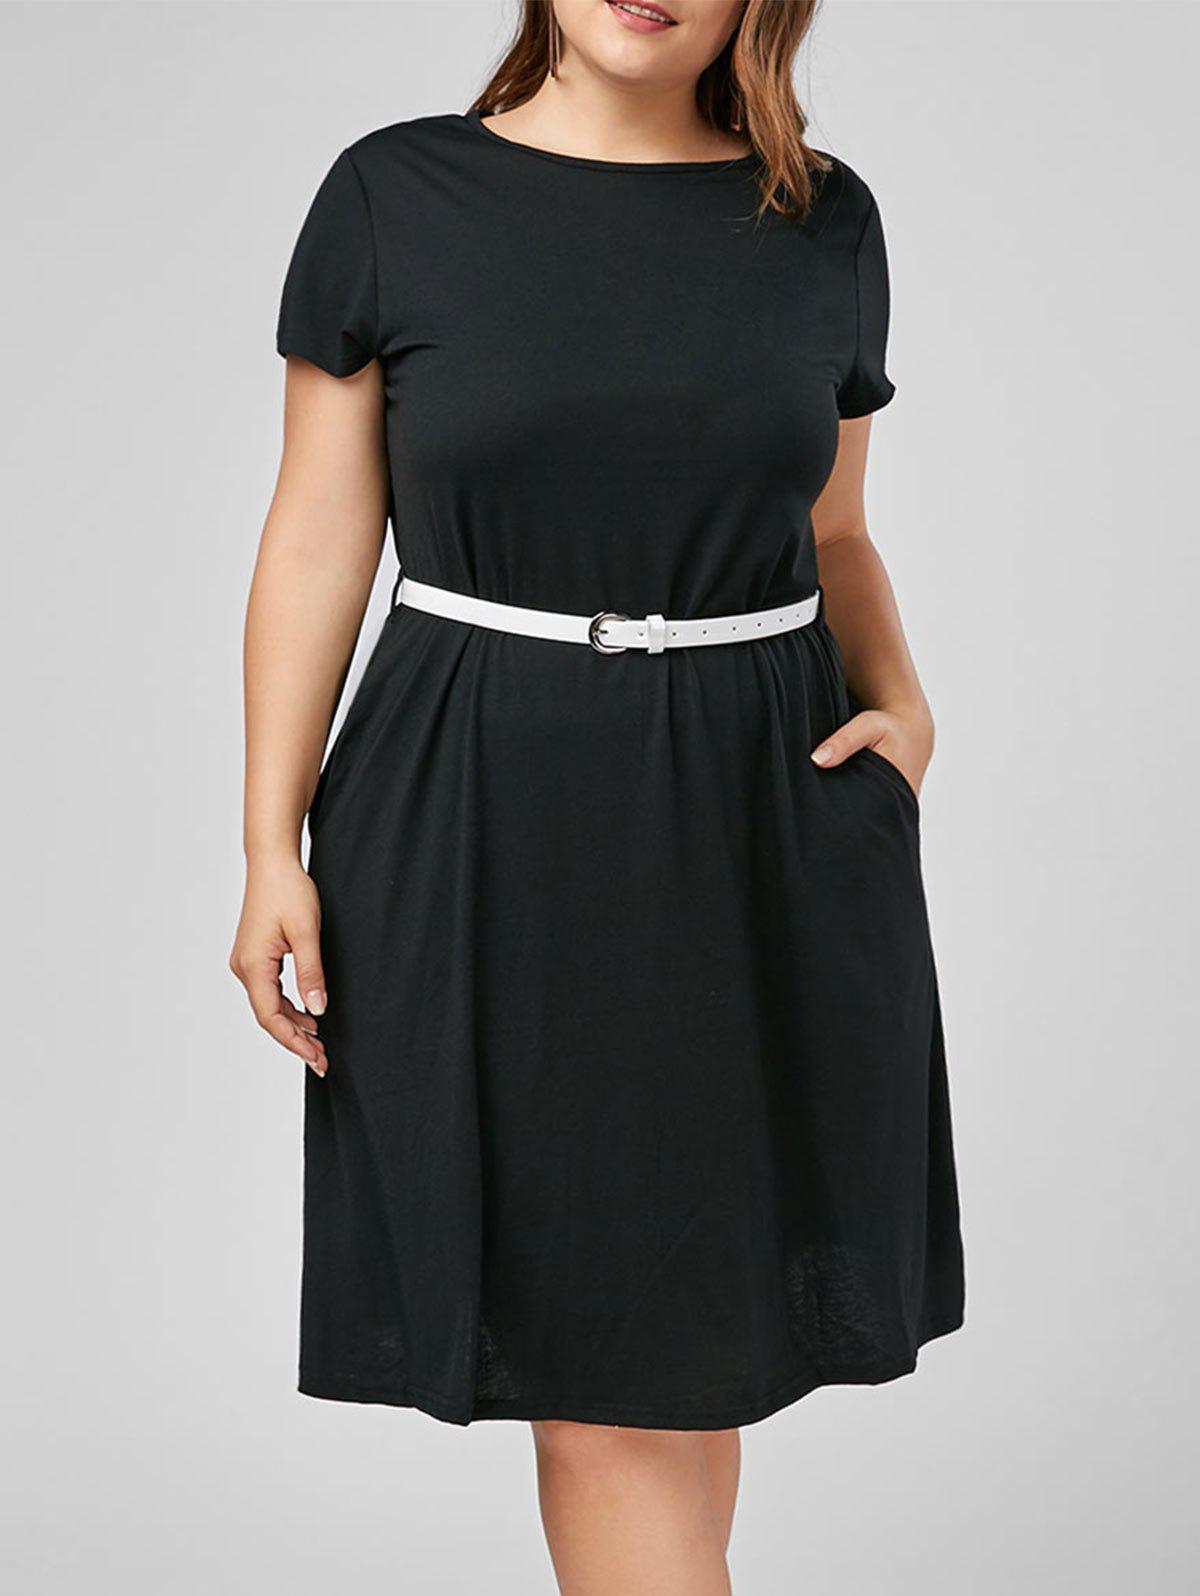 Knee Length A Line Plus Size Dress with Belt plus size collared a line dress with pockets